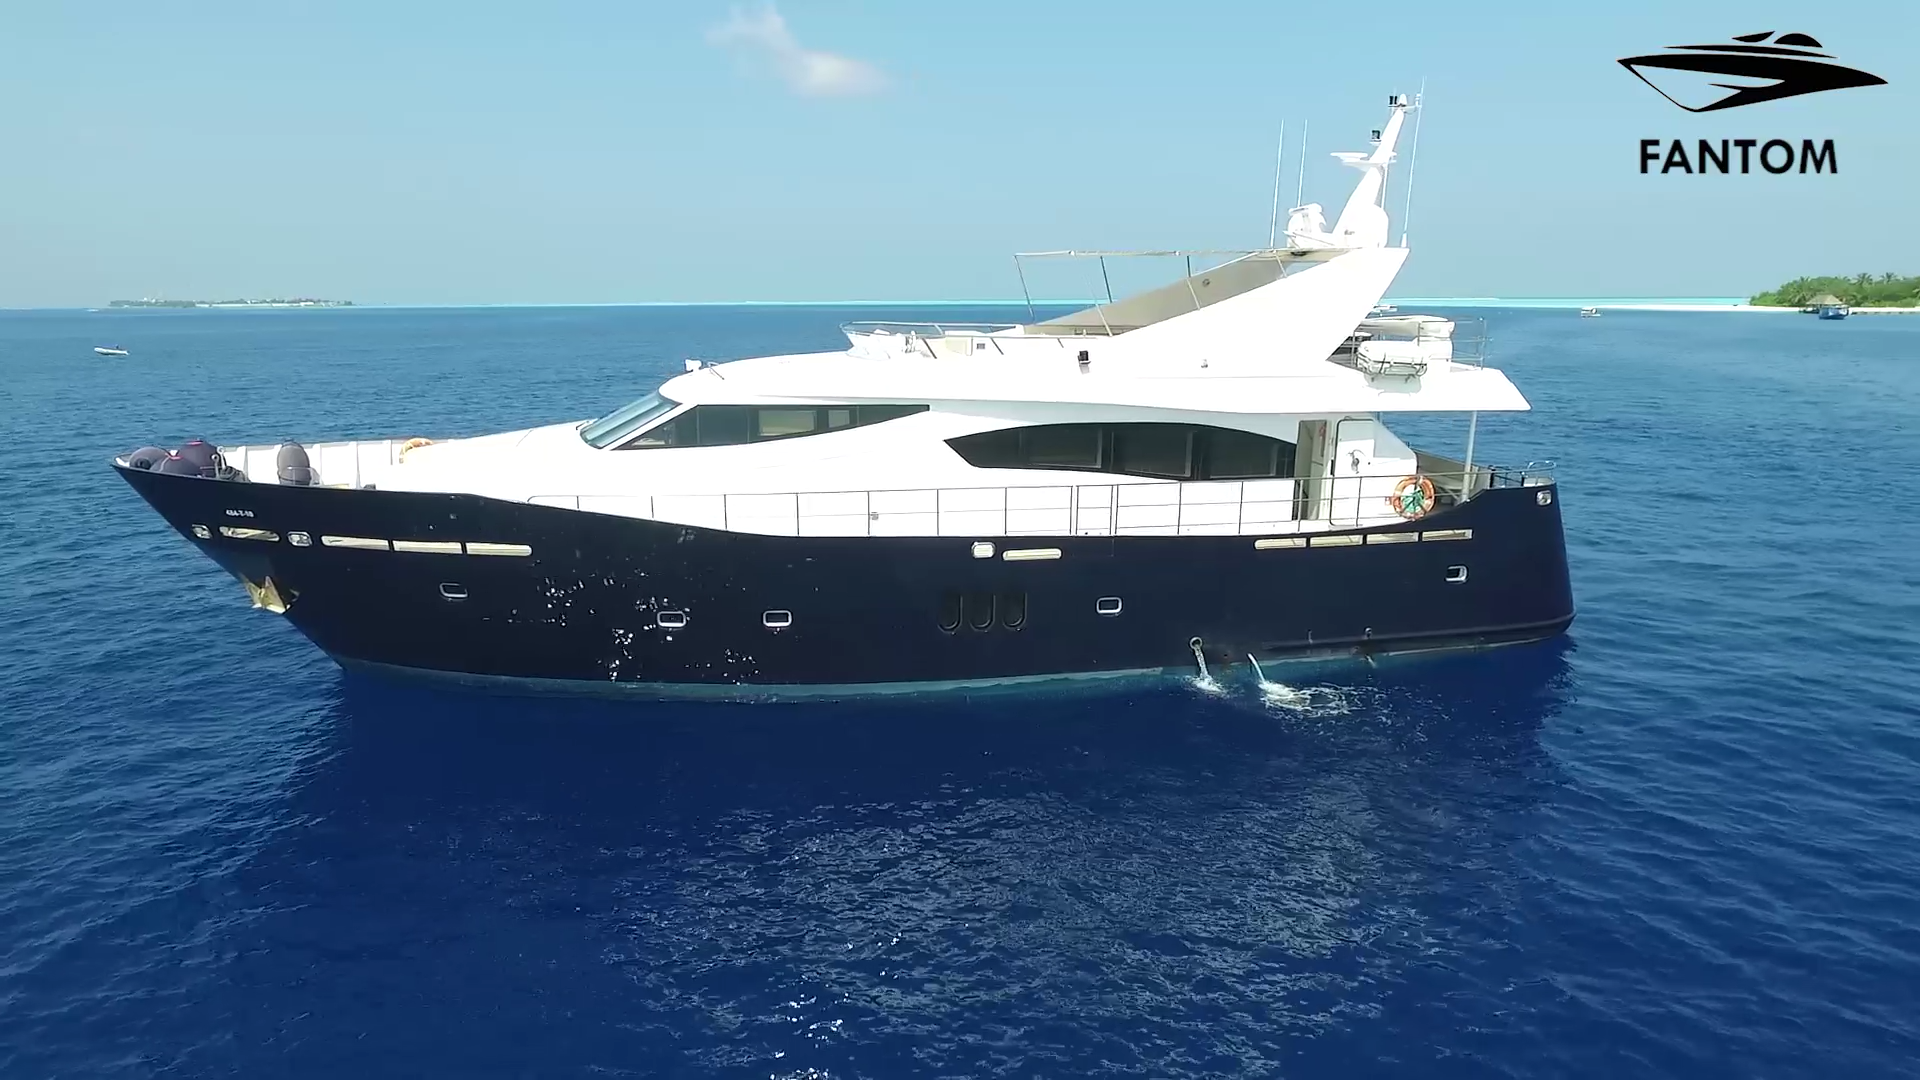 Fantom Luxury Yacht